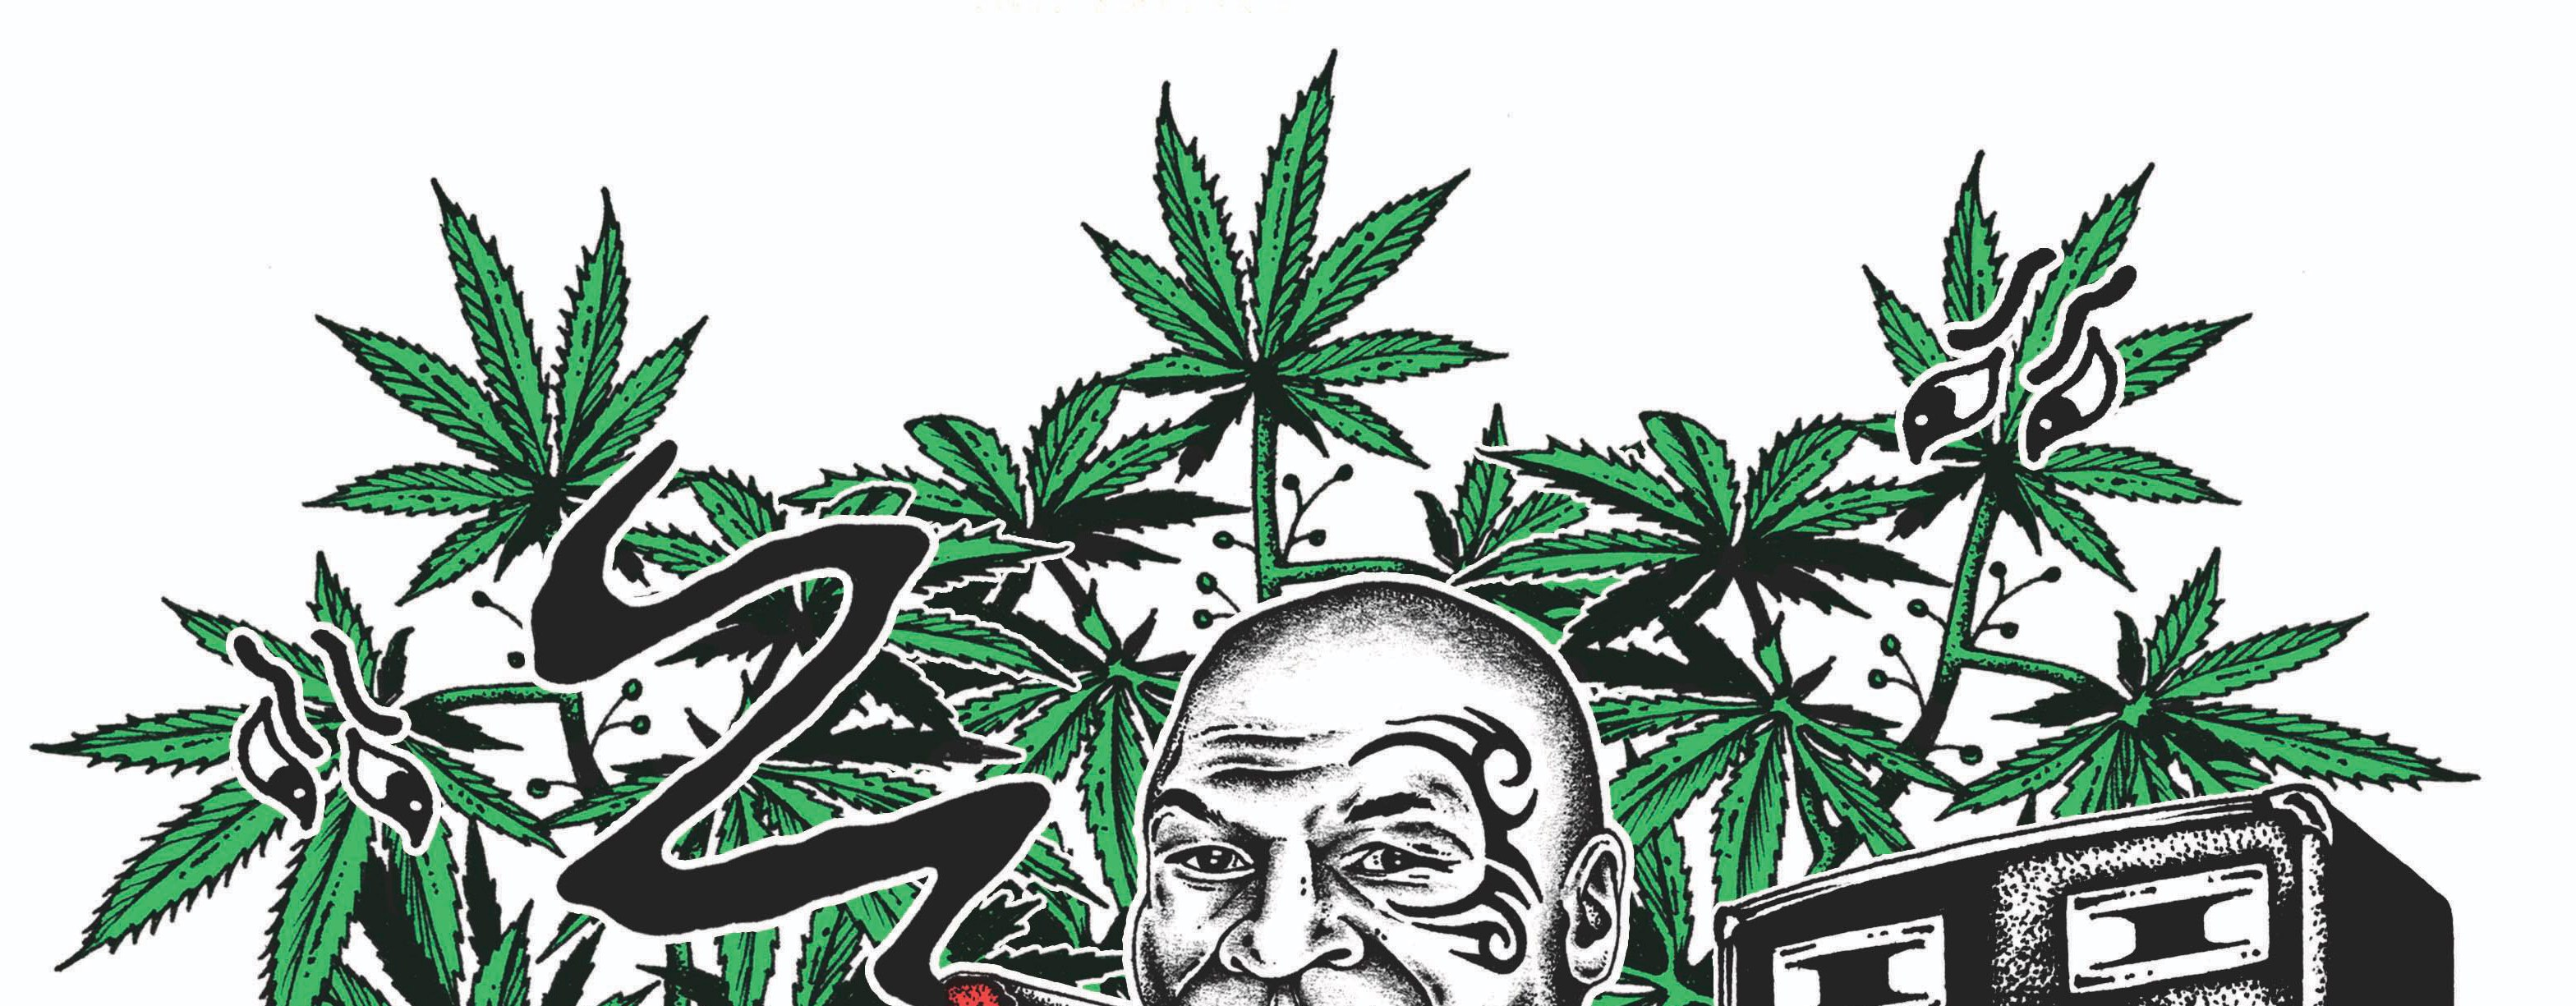 Clipart marajuana in an outdoor garden setting with hills picture download Mike Tyson\'s Weed Resort: The Former Champ Smokes the Toad | GQ picture download